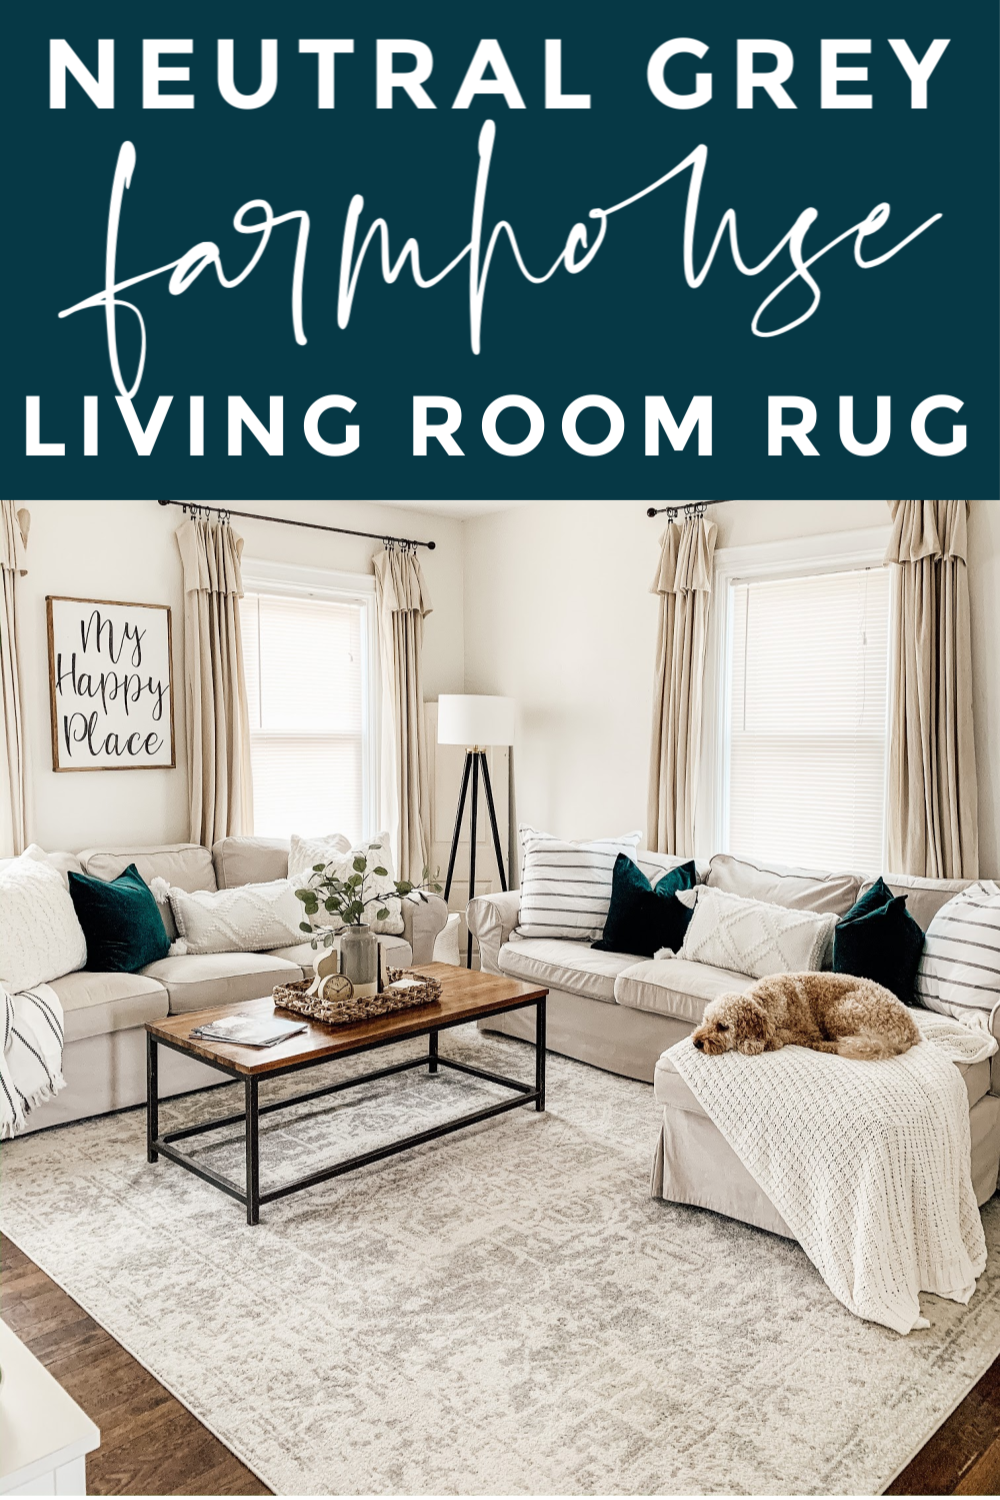 Photo of Neutral Grey Living Room Rug